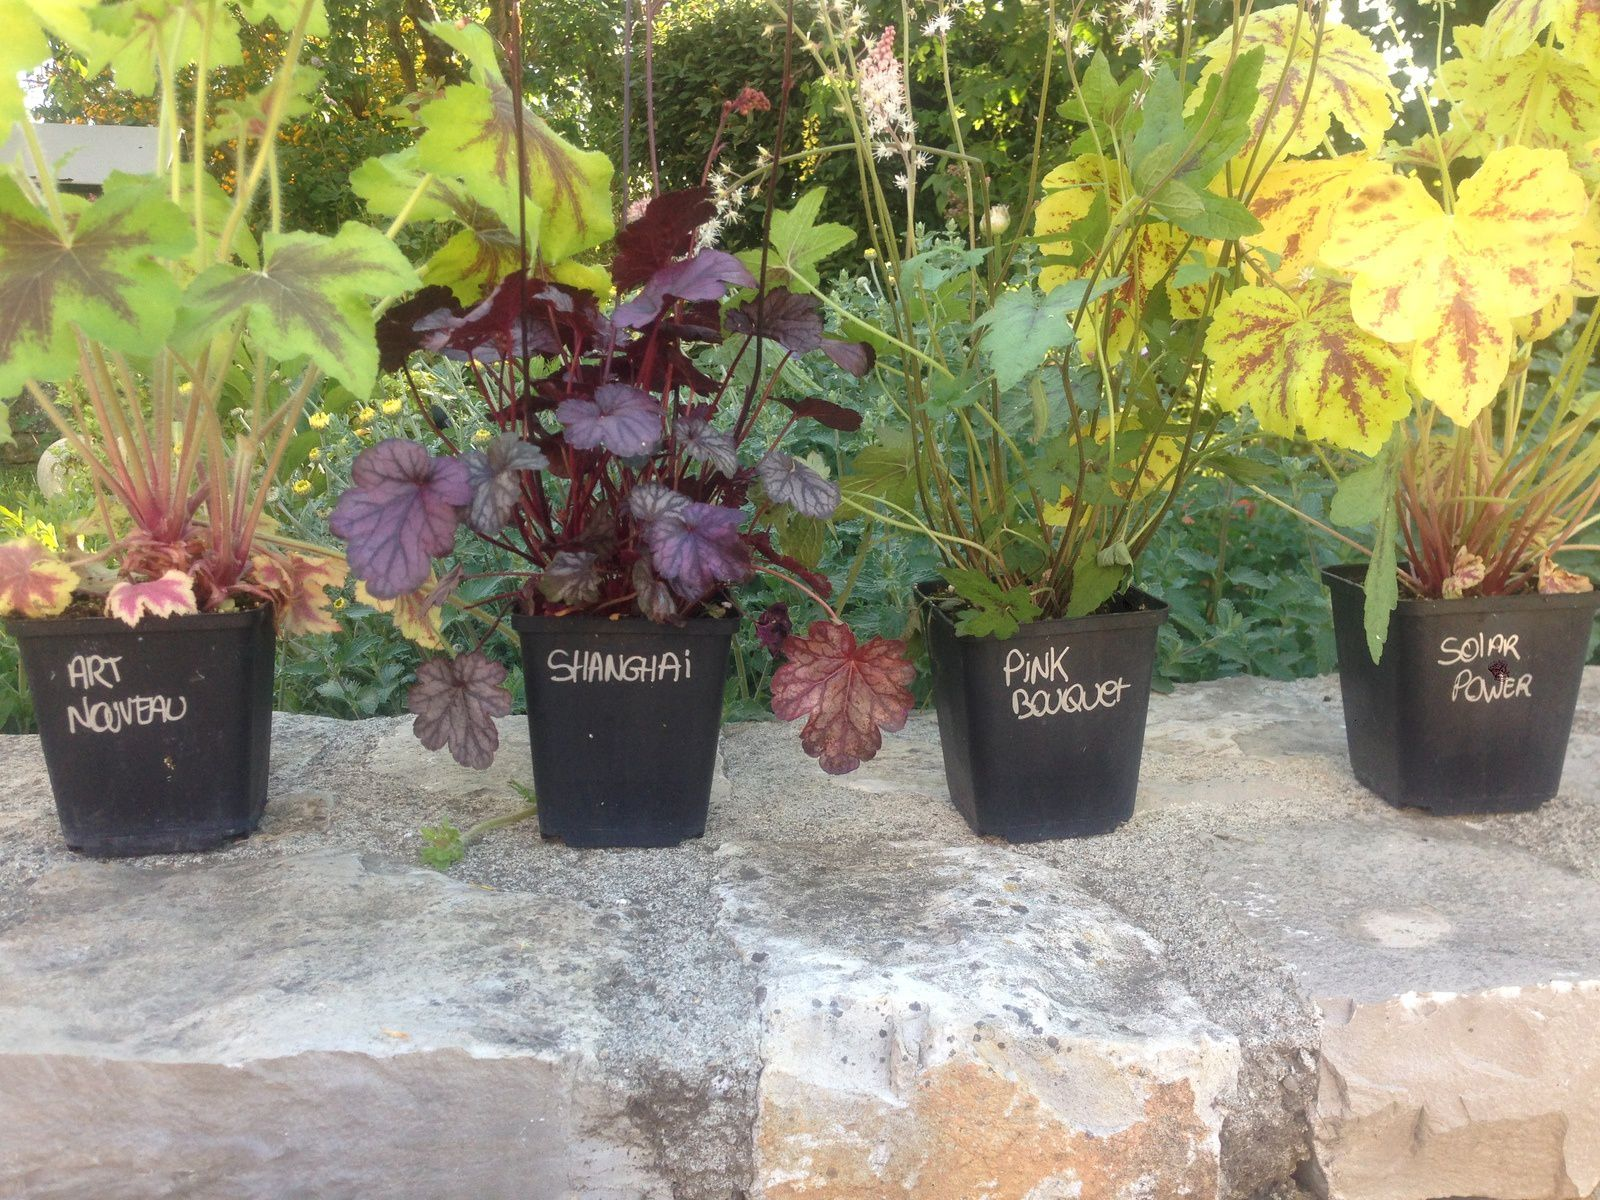 Heuchera 'Art nouveau', 'Shangai', 'Pink bouquet', 'Solar power'